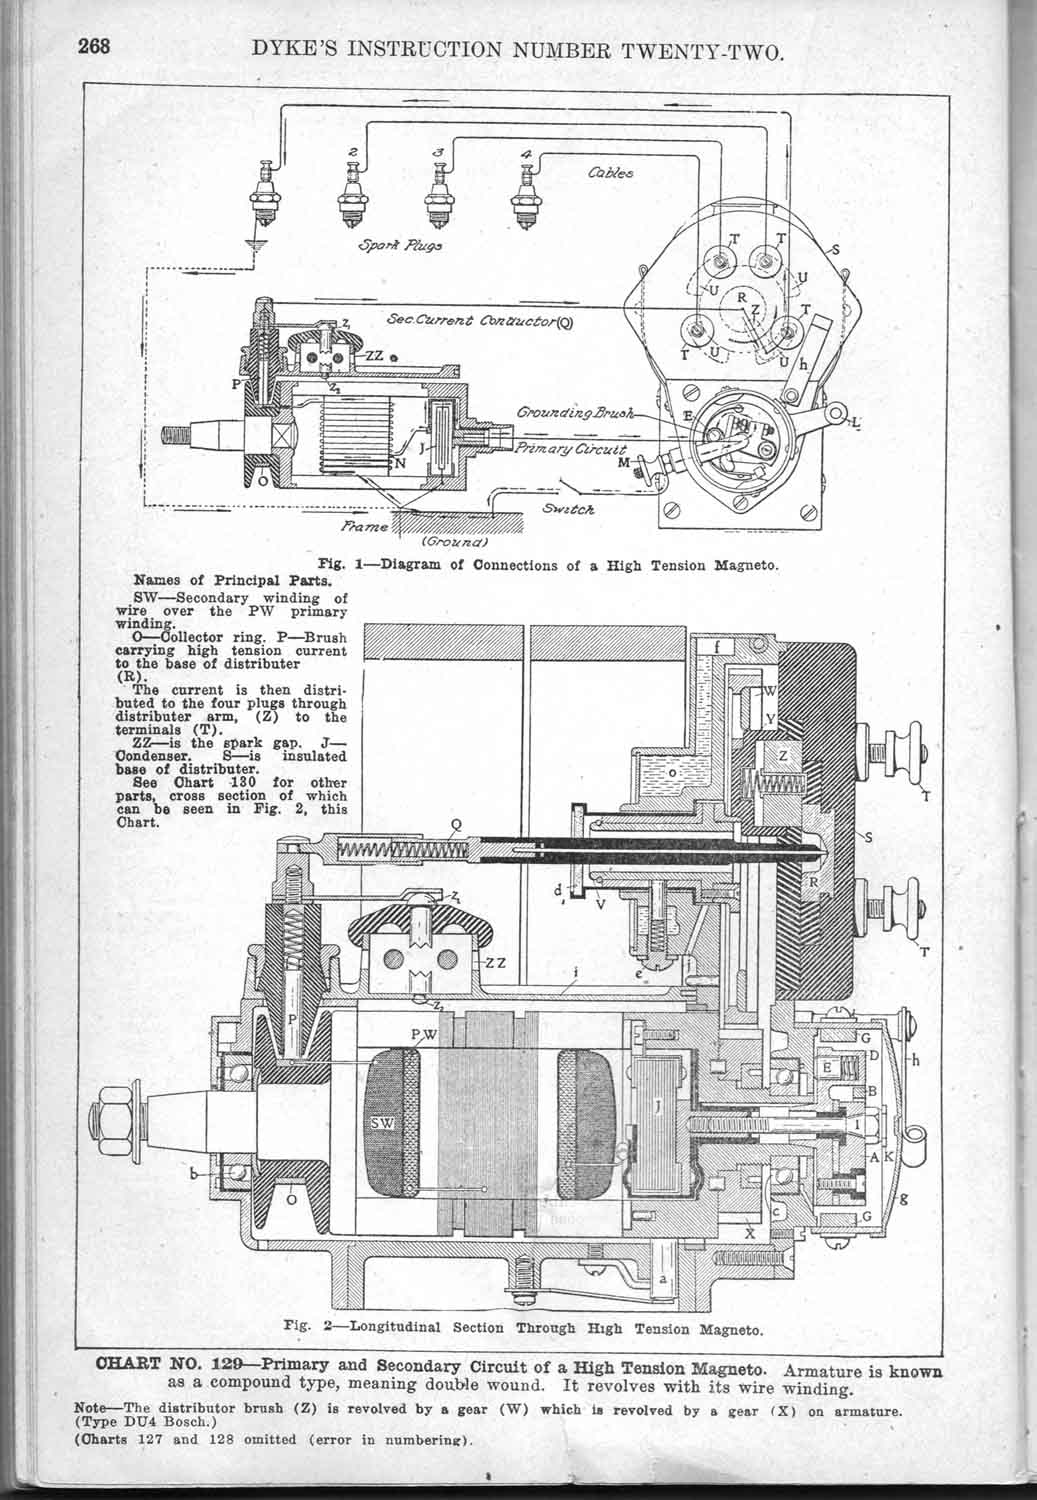 Model T Ford Forum: Bosch DU4 magneto question on battery charger wiring diagram, oil pump jack diagram, tiger diagram, water storage tank diagram, spitfire wire harness diagram, 6 volt battery wiring diagram, at&t u-verse hook up diagram, triumph t140 oil routing diagram, caterpillar electrical diagram,